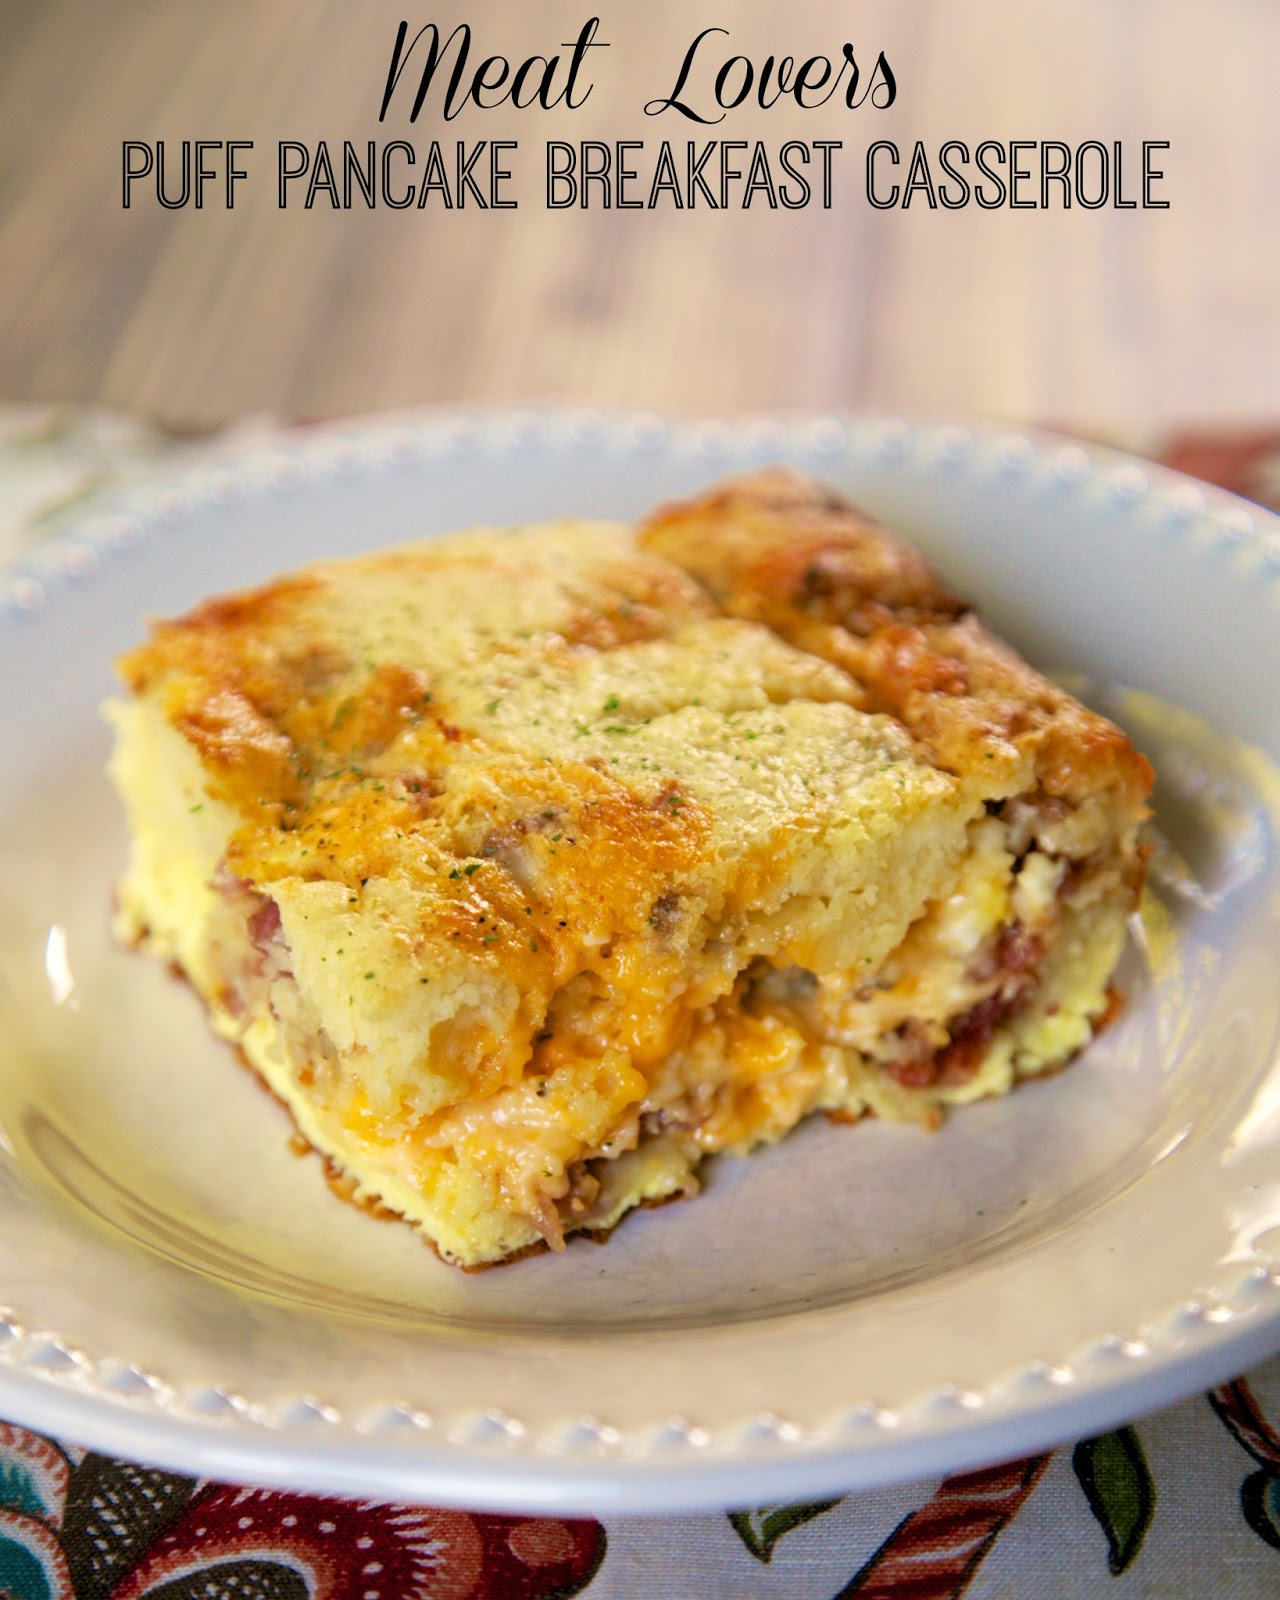 Meat Lovers Puff Pancake Breakfast Casserole - Meat Lovers Puff Pancake Breakfast Casserole Recipe ~ Feel free to mix up the meats, add veggies or change up the cheeses. This is a really good base recipe to have fun with. Try with syrup!